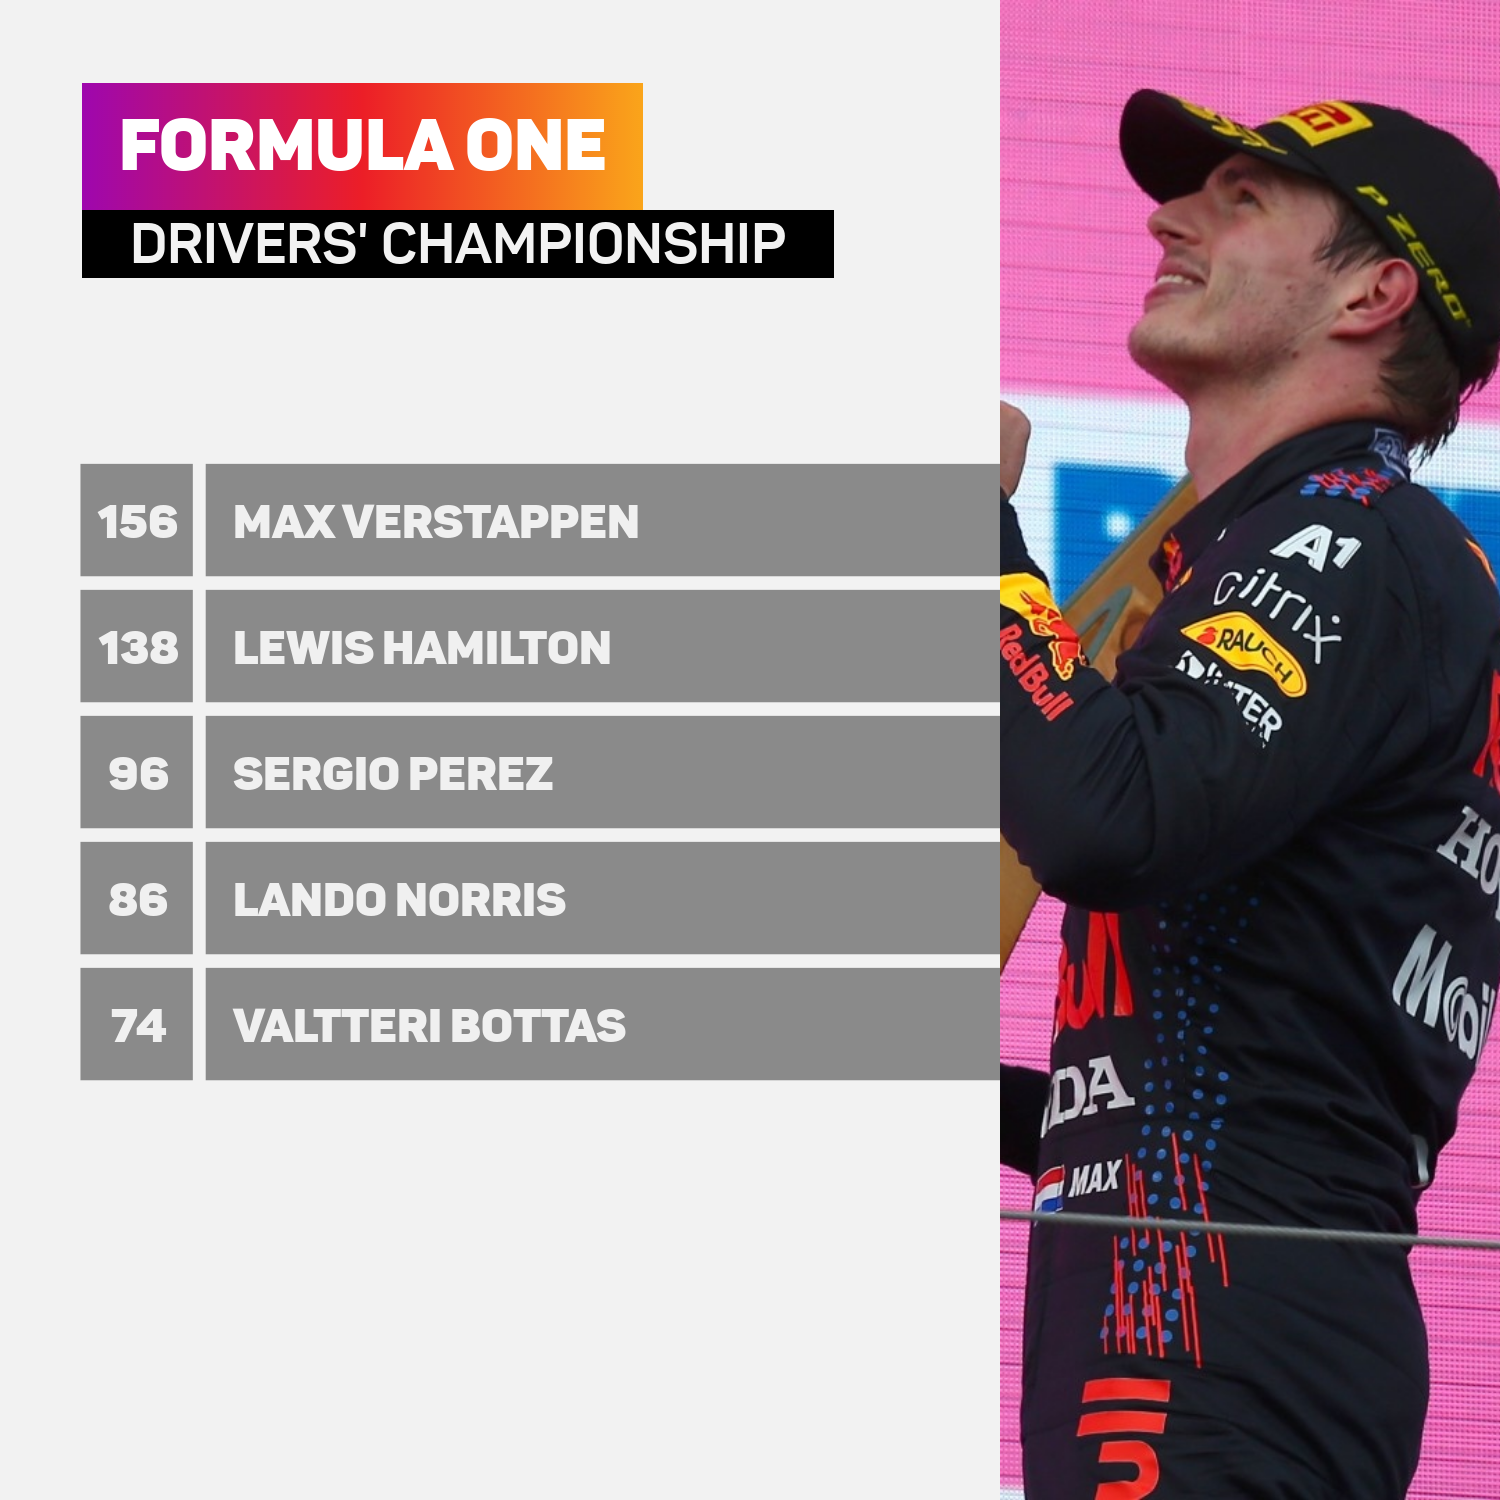 Max Verstappen is 18 points clear of Lewis Hamilton